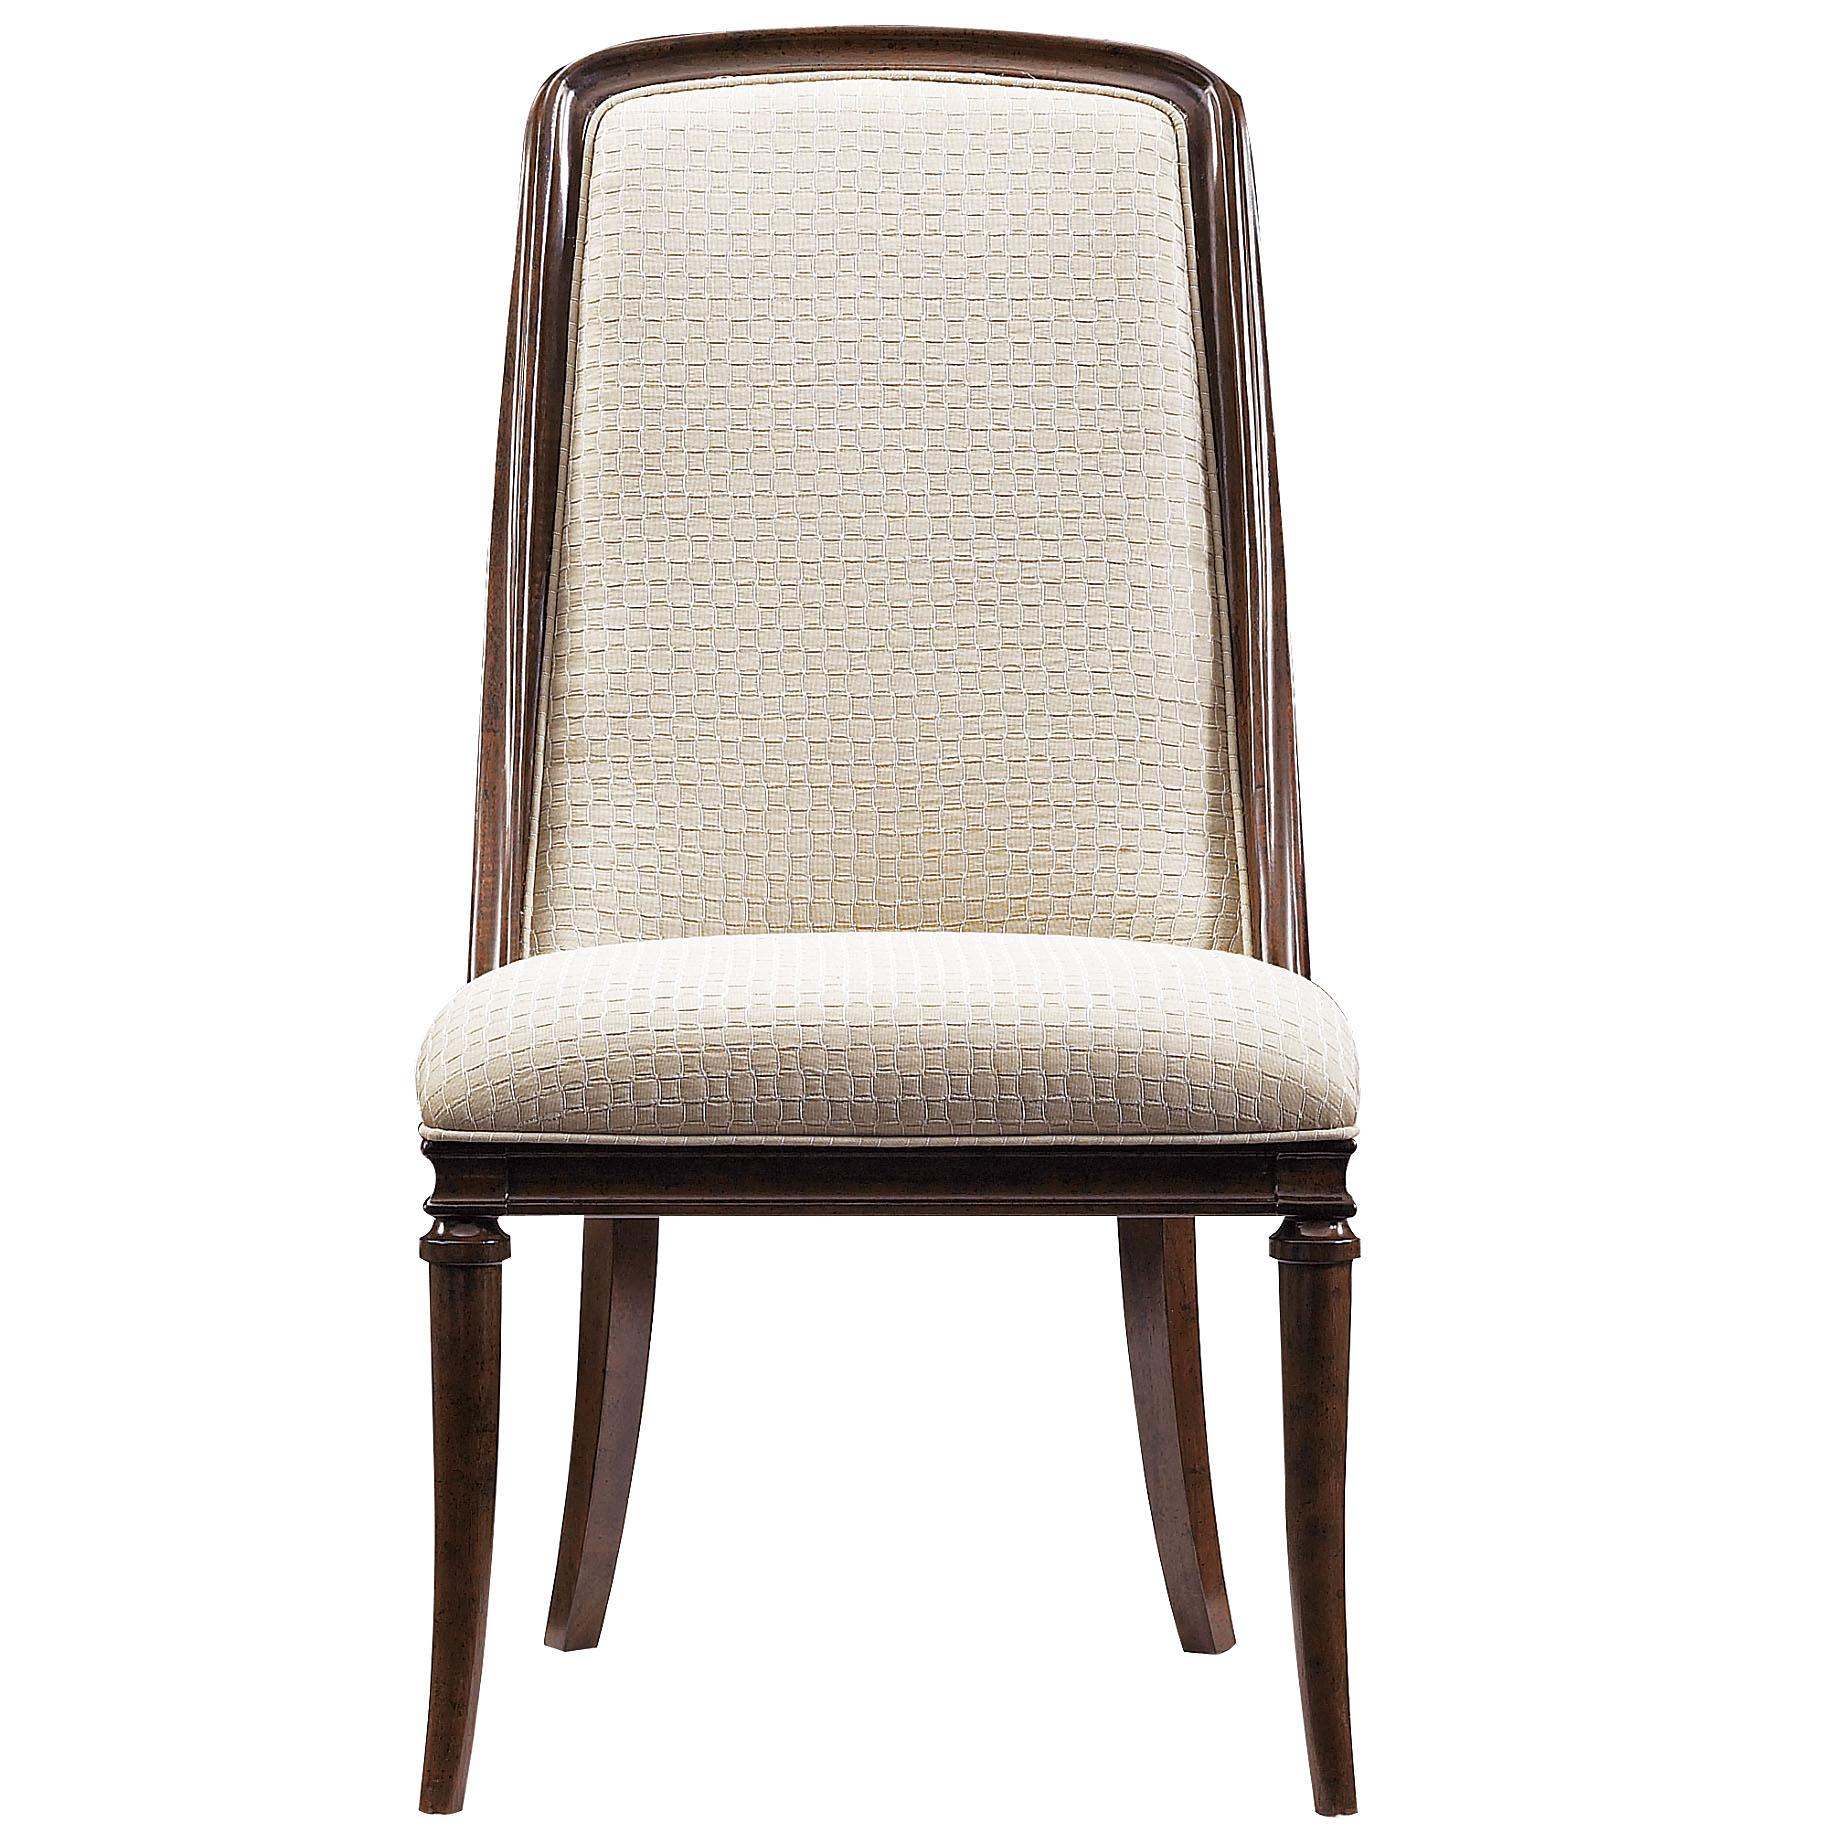 Stanley Furniture Avalon Heights Olympia Upholstered Host Chair - Item Number: 193-11-75